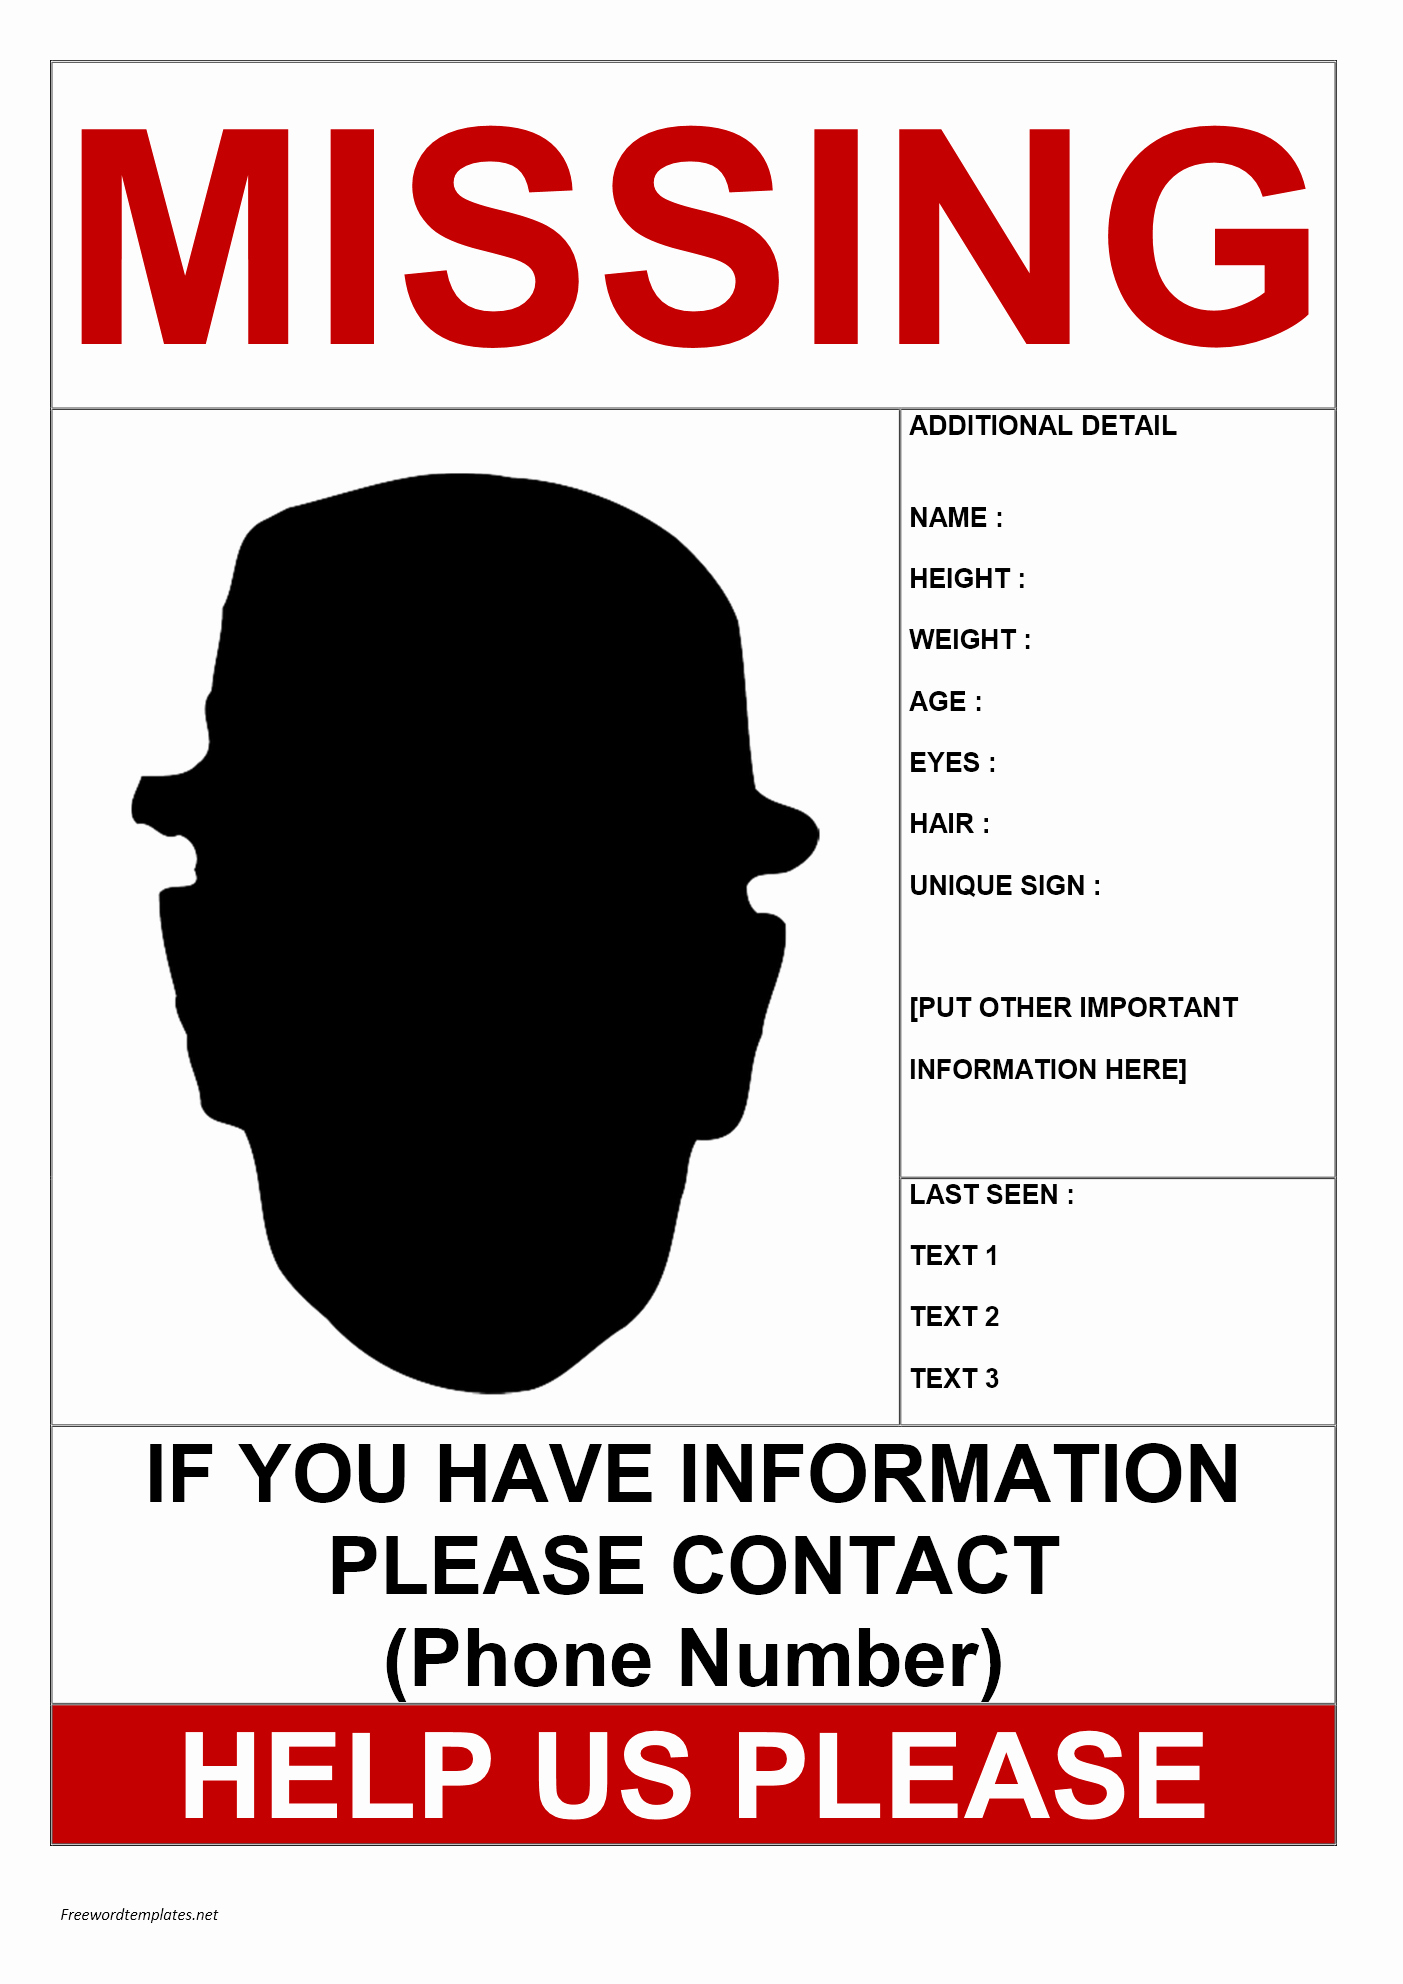 Missing Person Poster Template Awesome Missing Person Poster Template